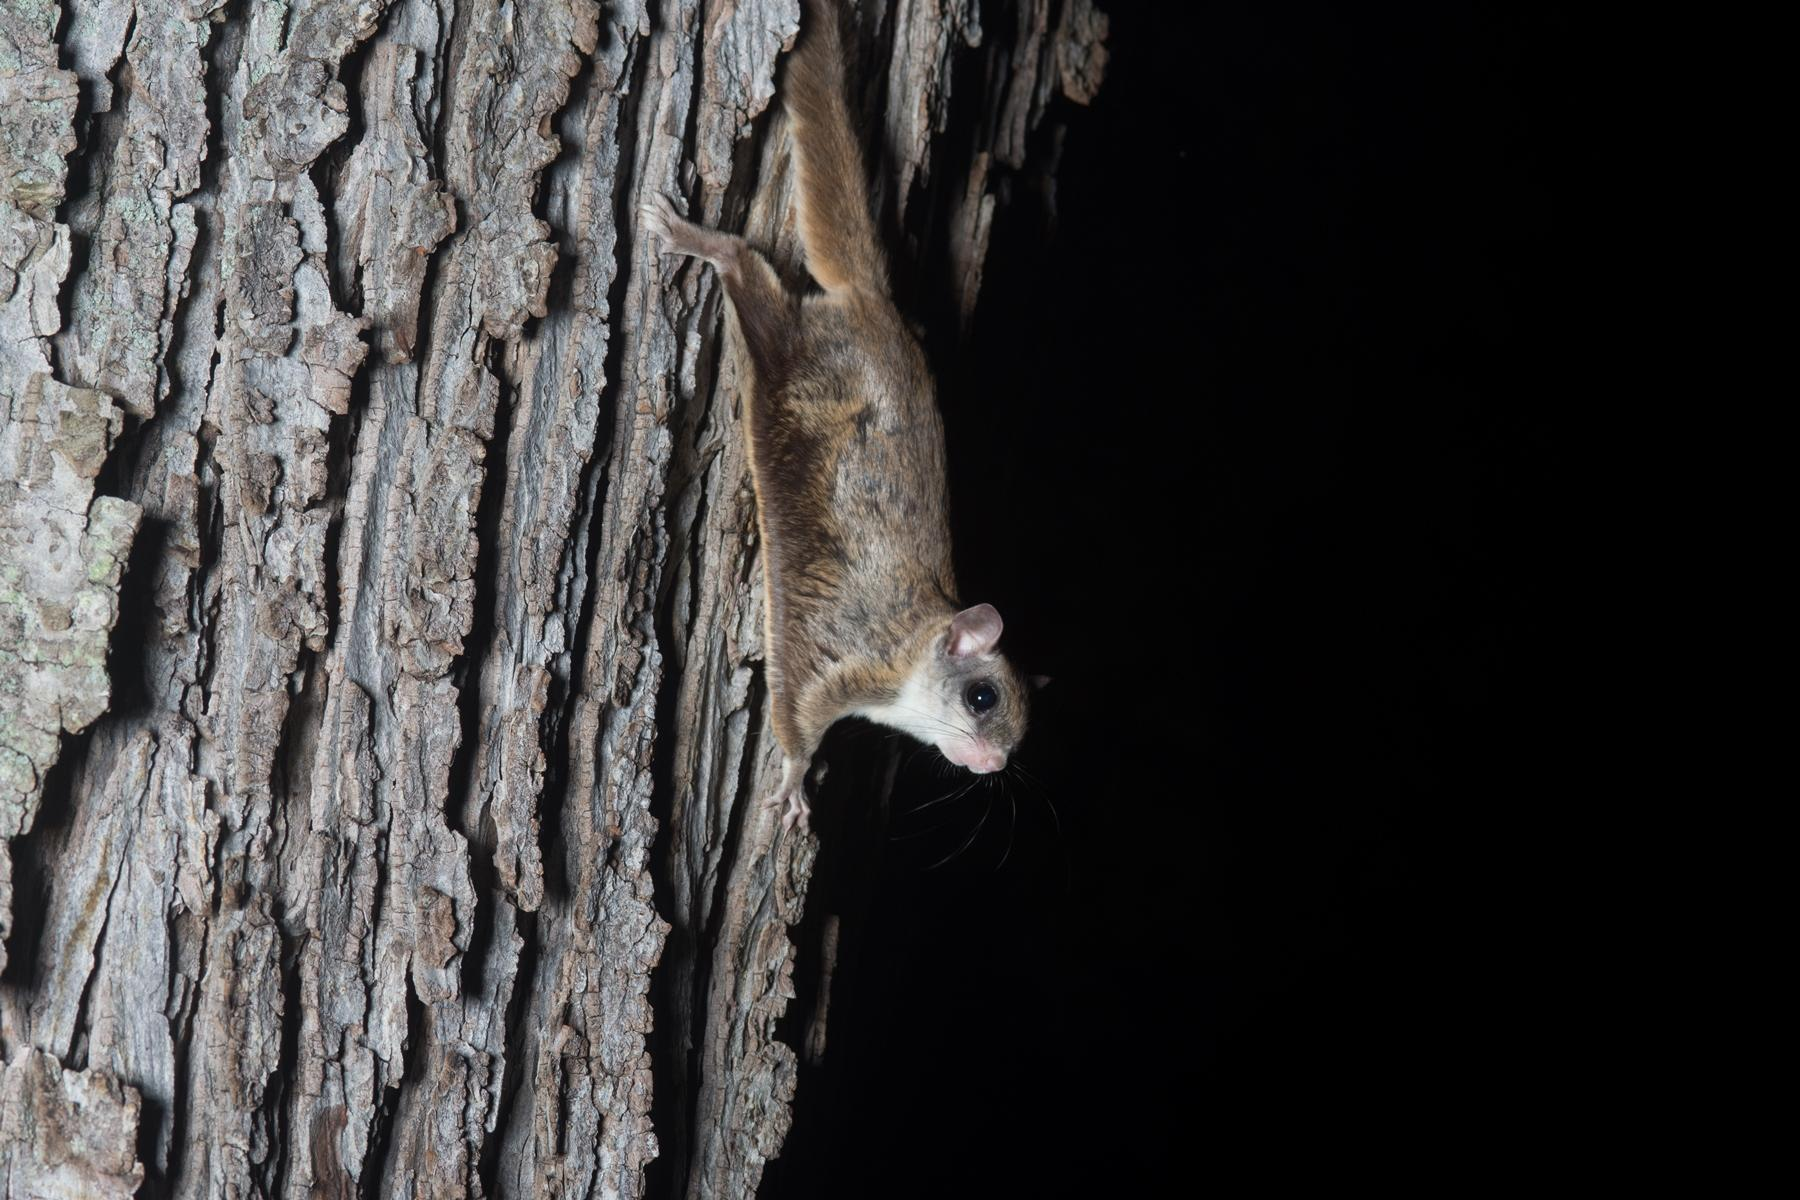 Flying squirrel - KHAO SOK National Park, Thailand